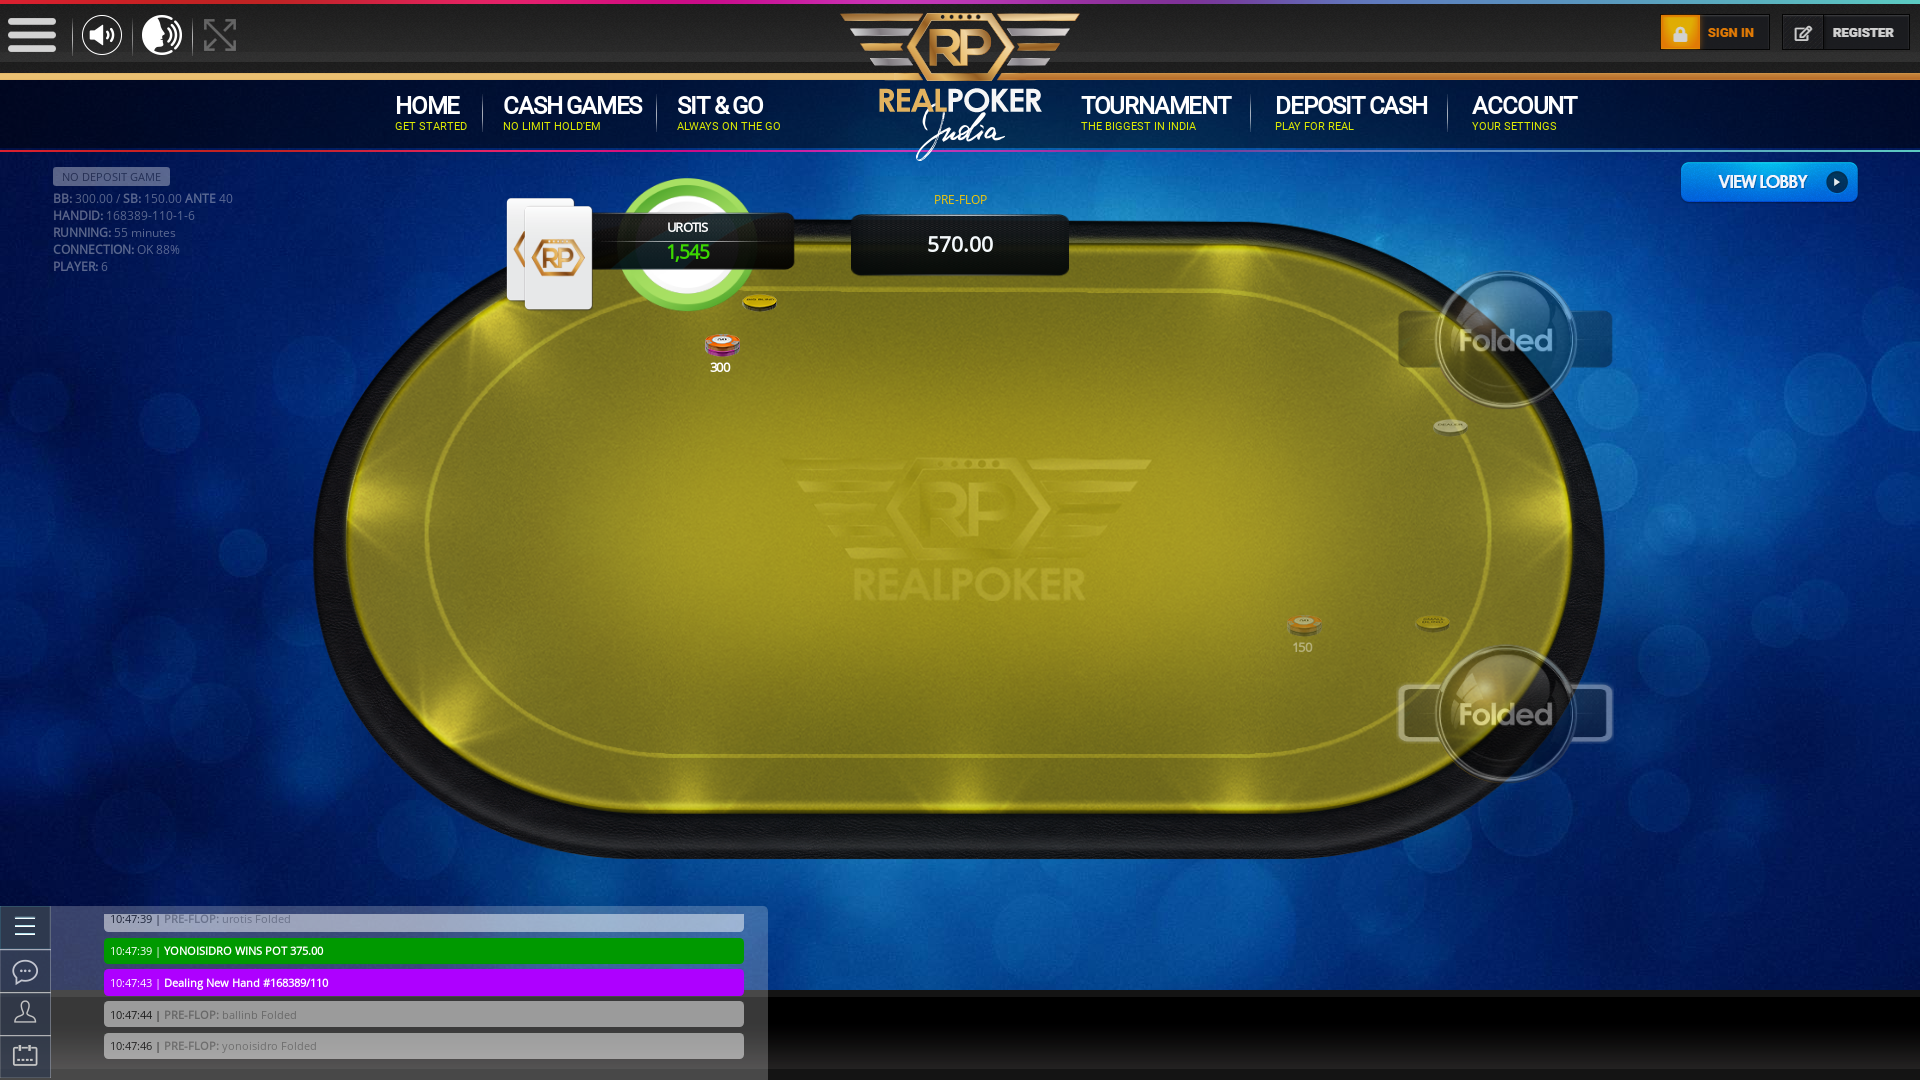 Indian 10 player poker in the 54th minute